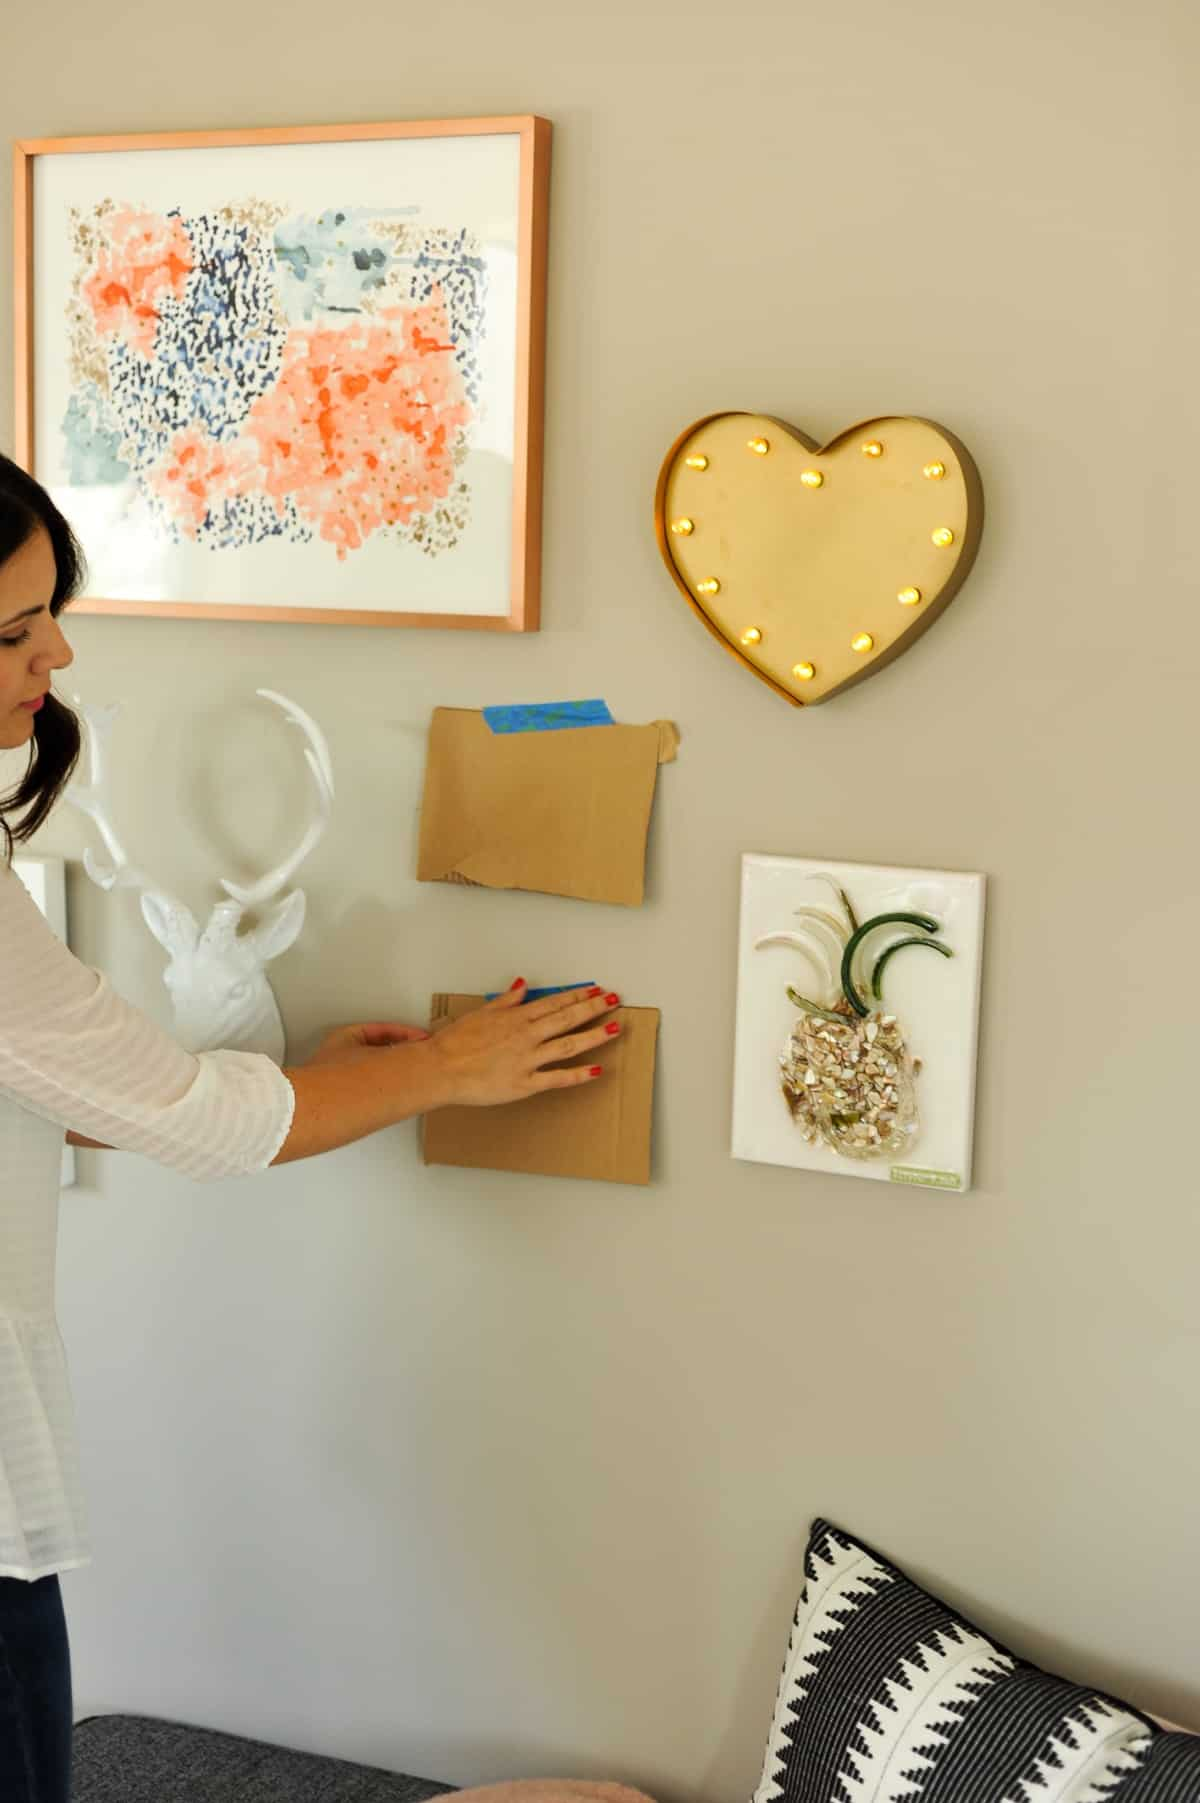 How to hang a gallery wall properly, tips to creating a gallery wall - My Style Vita - @mystylevita - 5